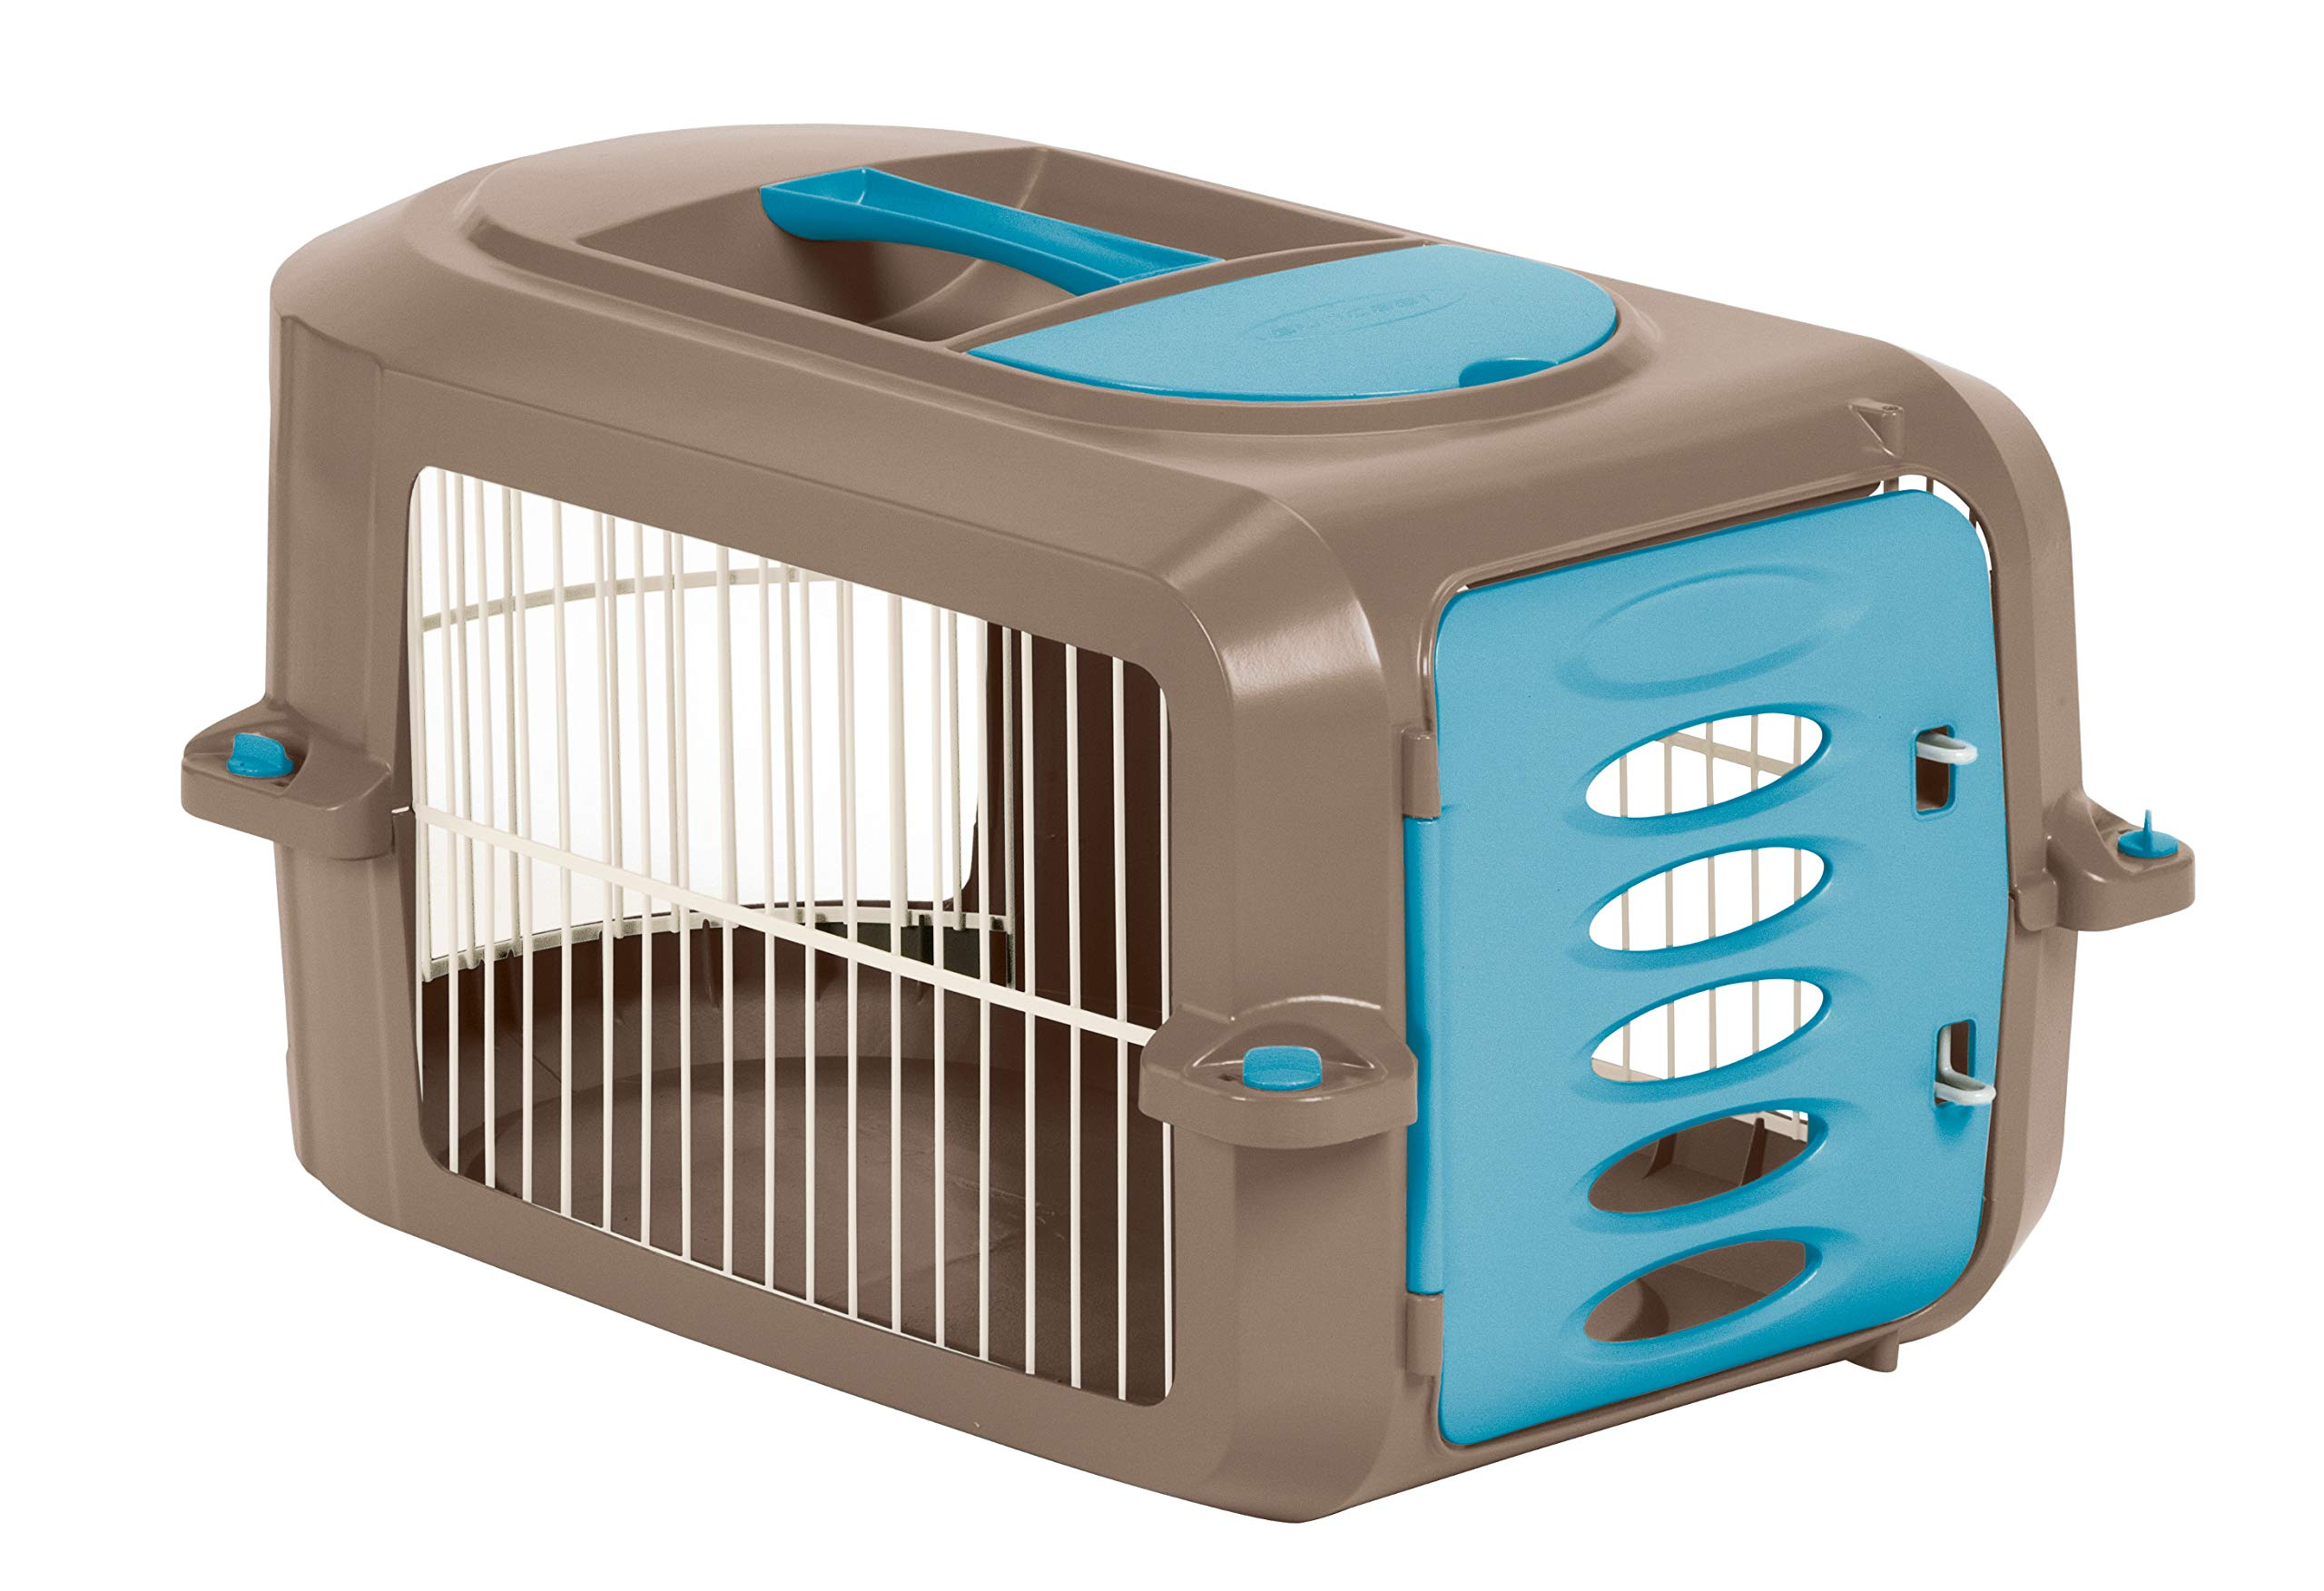 Suncast Portable Dog Crate with Handle for Small and Medium Dogs - Bowl Included - Stylish and Durable Portable Pet Carrier - Dogs up to 30 lbs. - Brown and Light Blue by Suncast